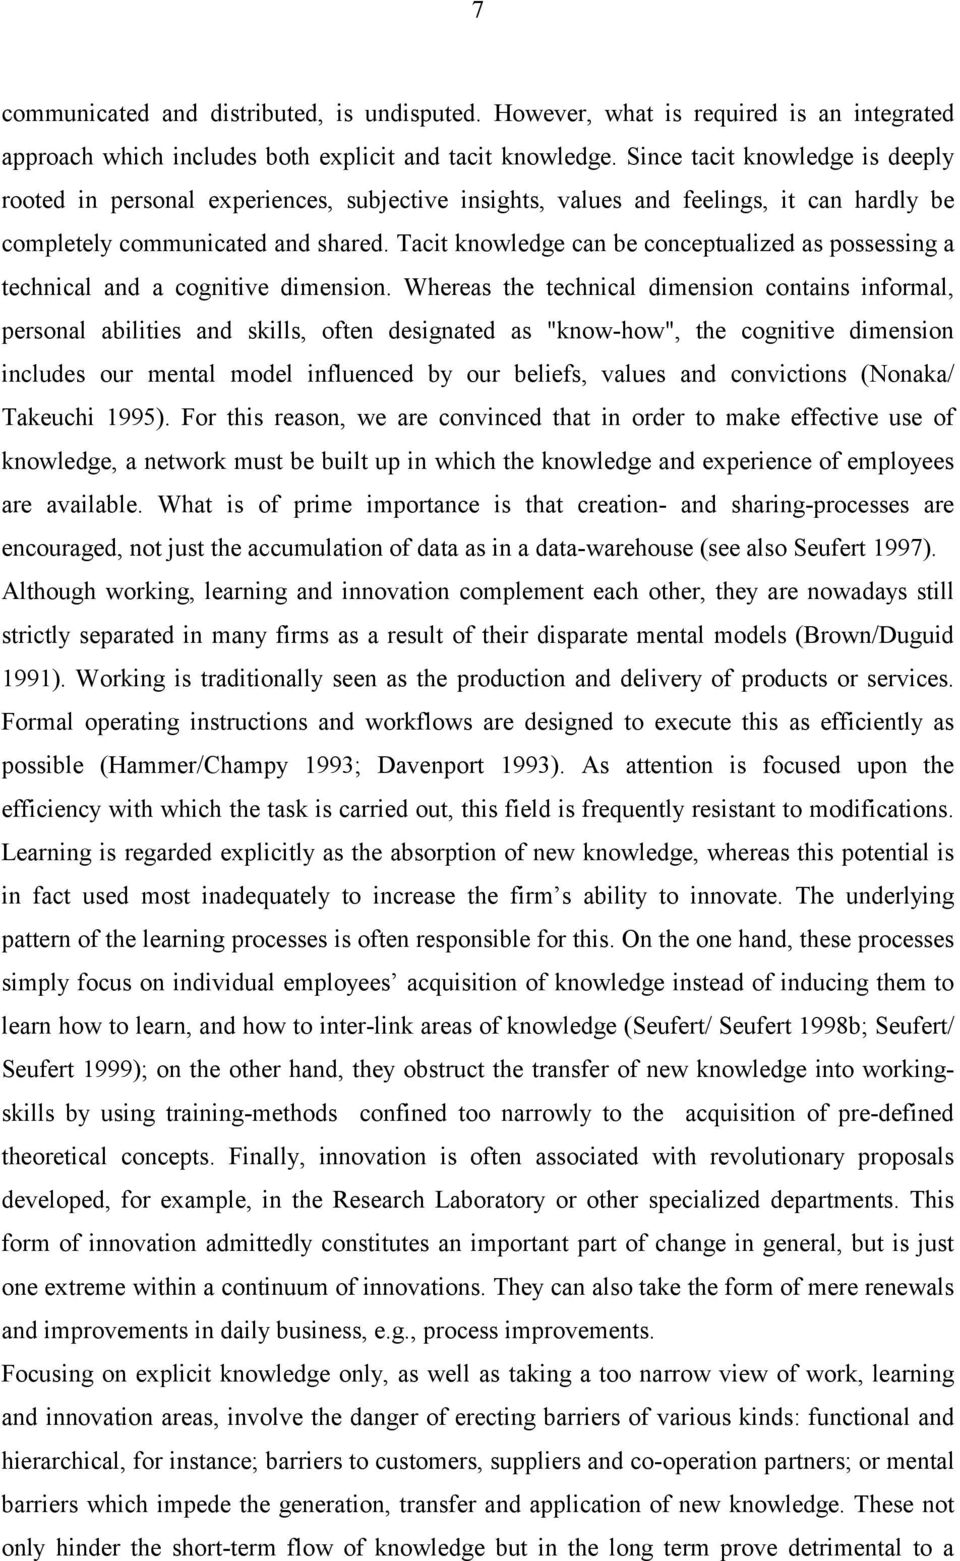 Tacit knowledge can be conceptualized as possessing a technical and a cognitive dimension.